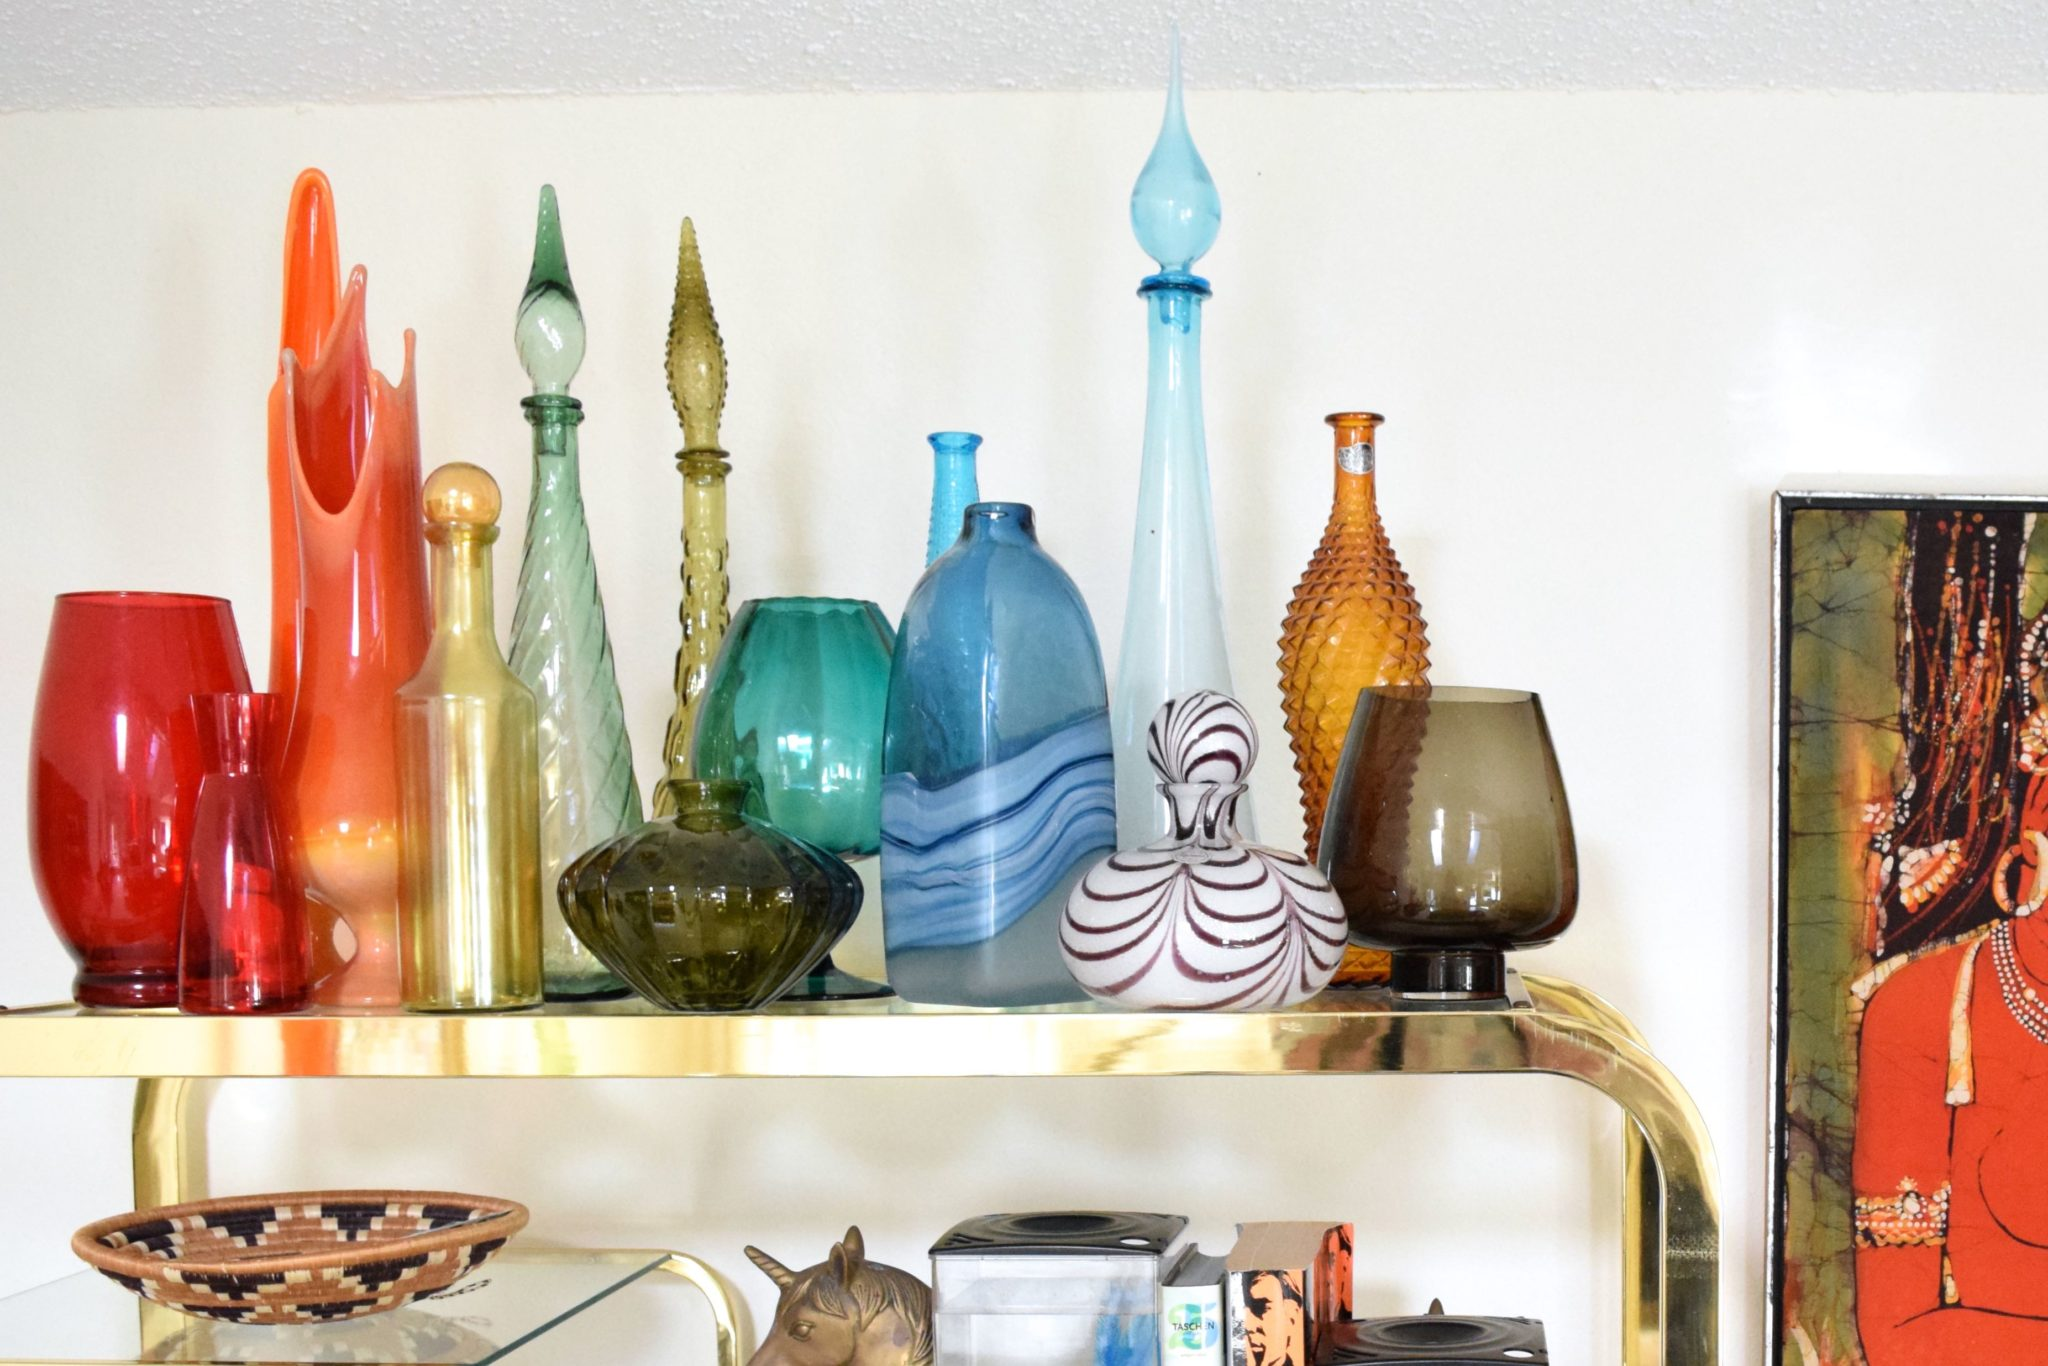 Gathering a collection of colored glass.